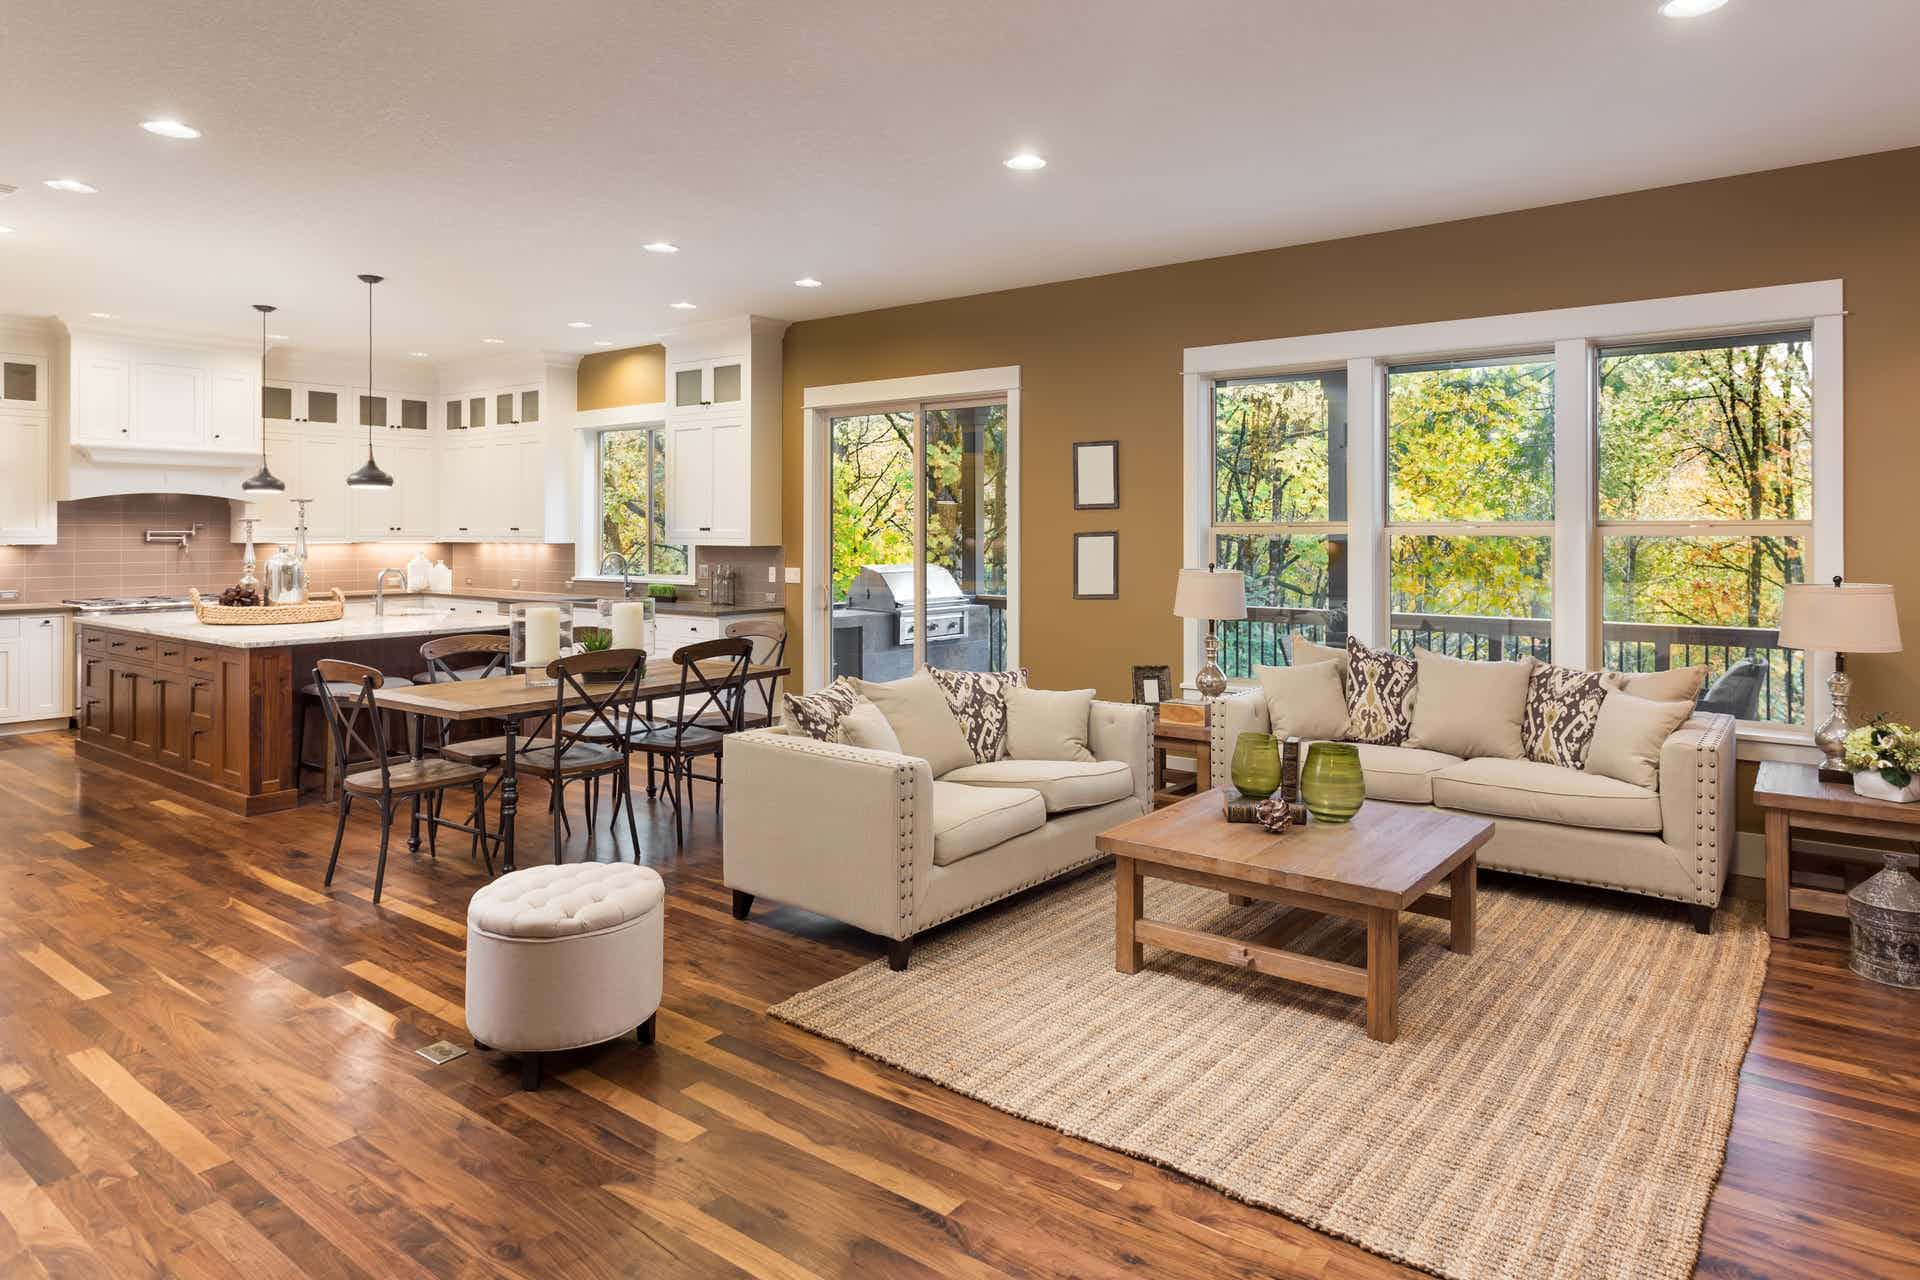 how much do hardwood floors increase home value